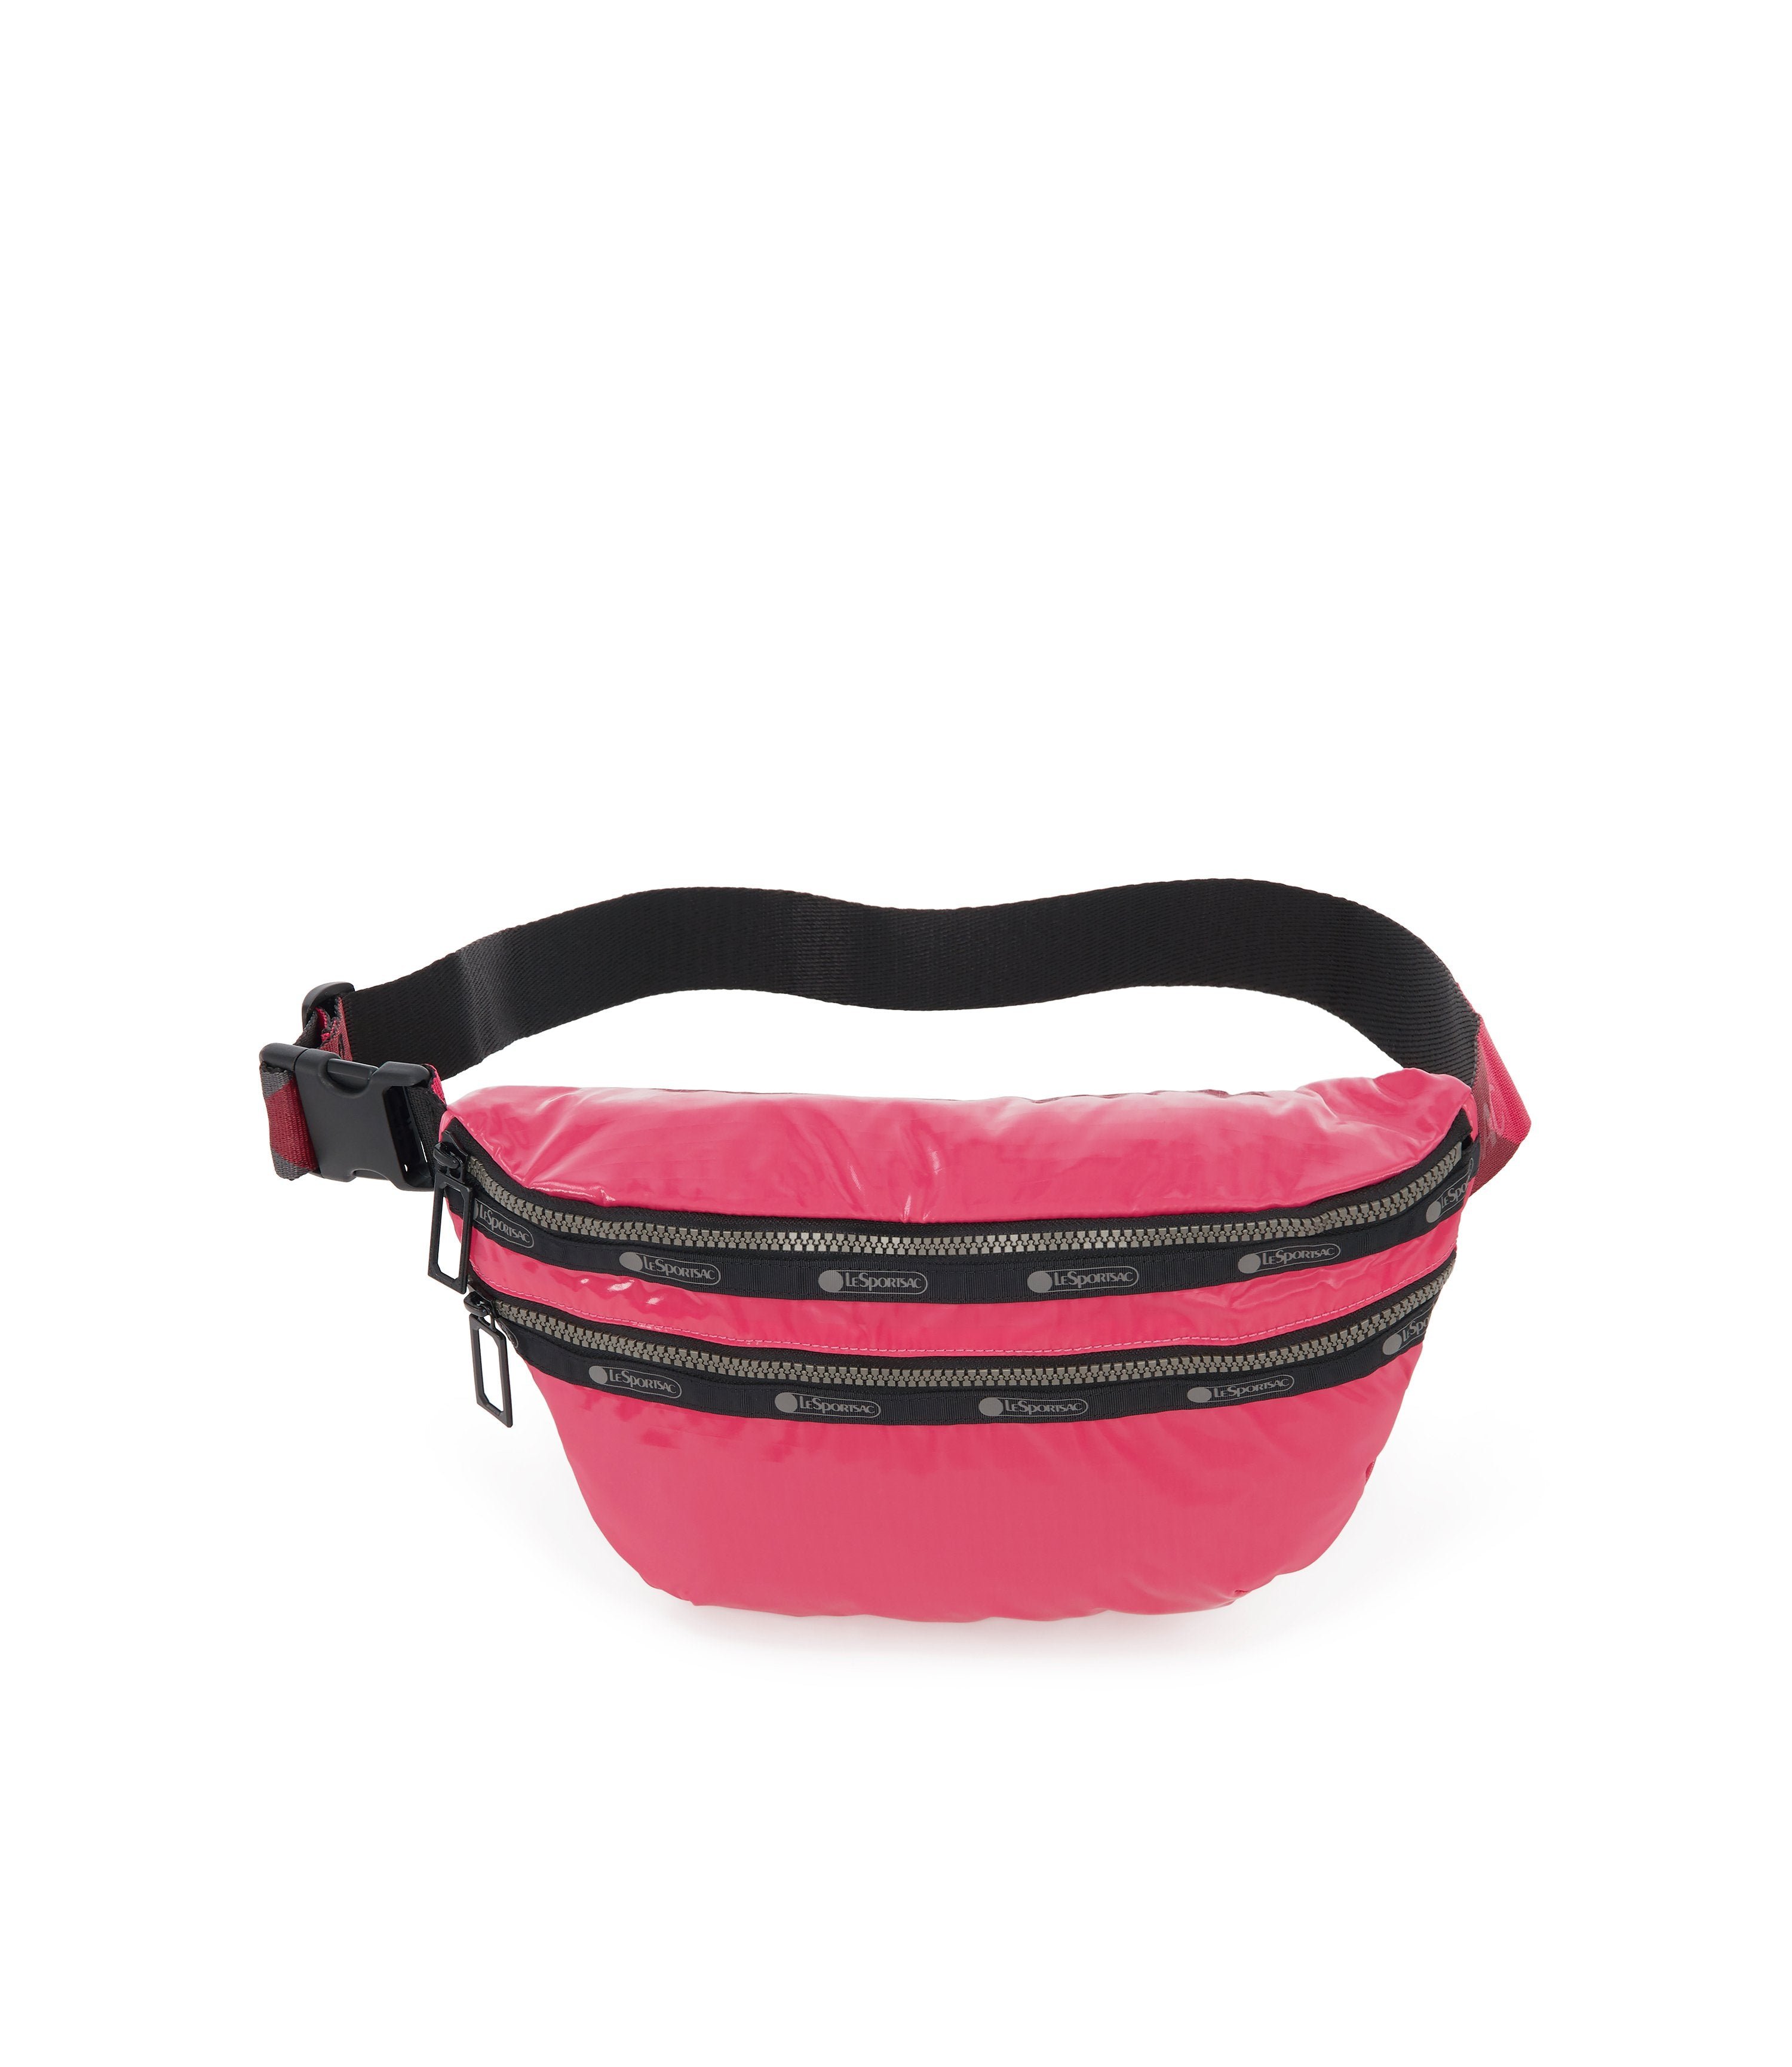 Heritage Belt Bag, Accessories, Makeup and Cosmetic Bags, LeSportsac, Rose Arrow Liquid Patent